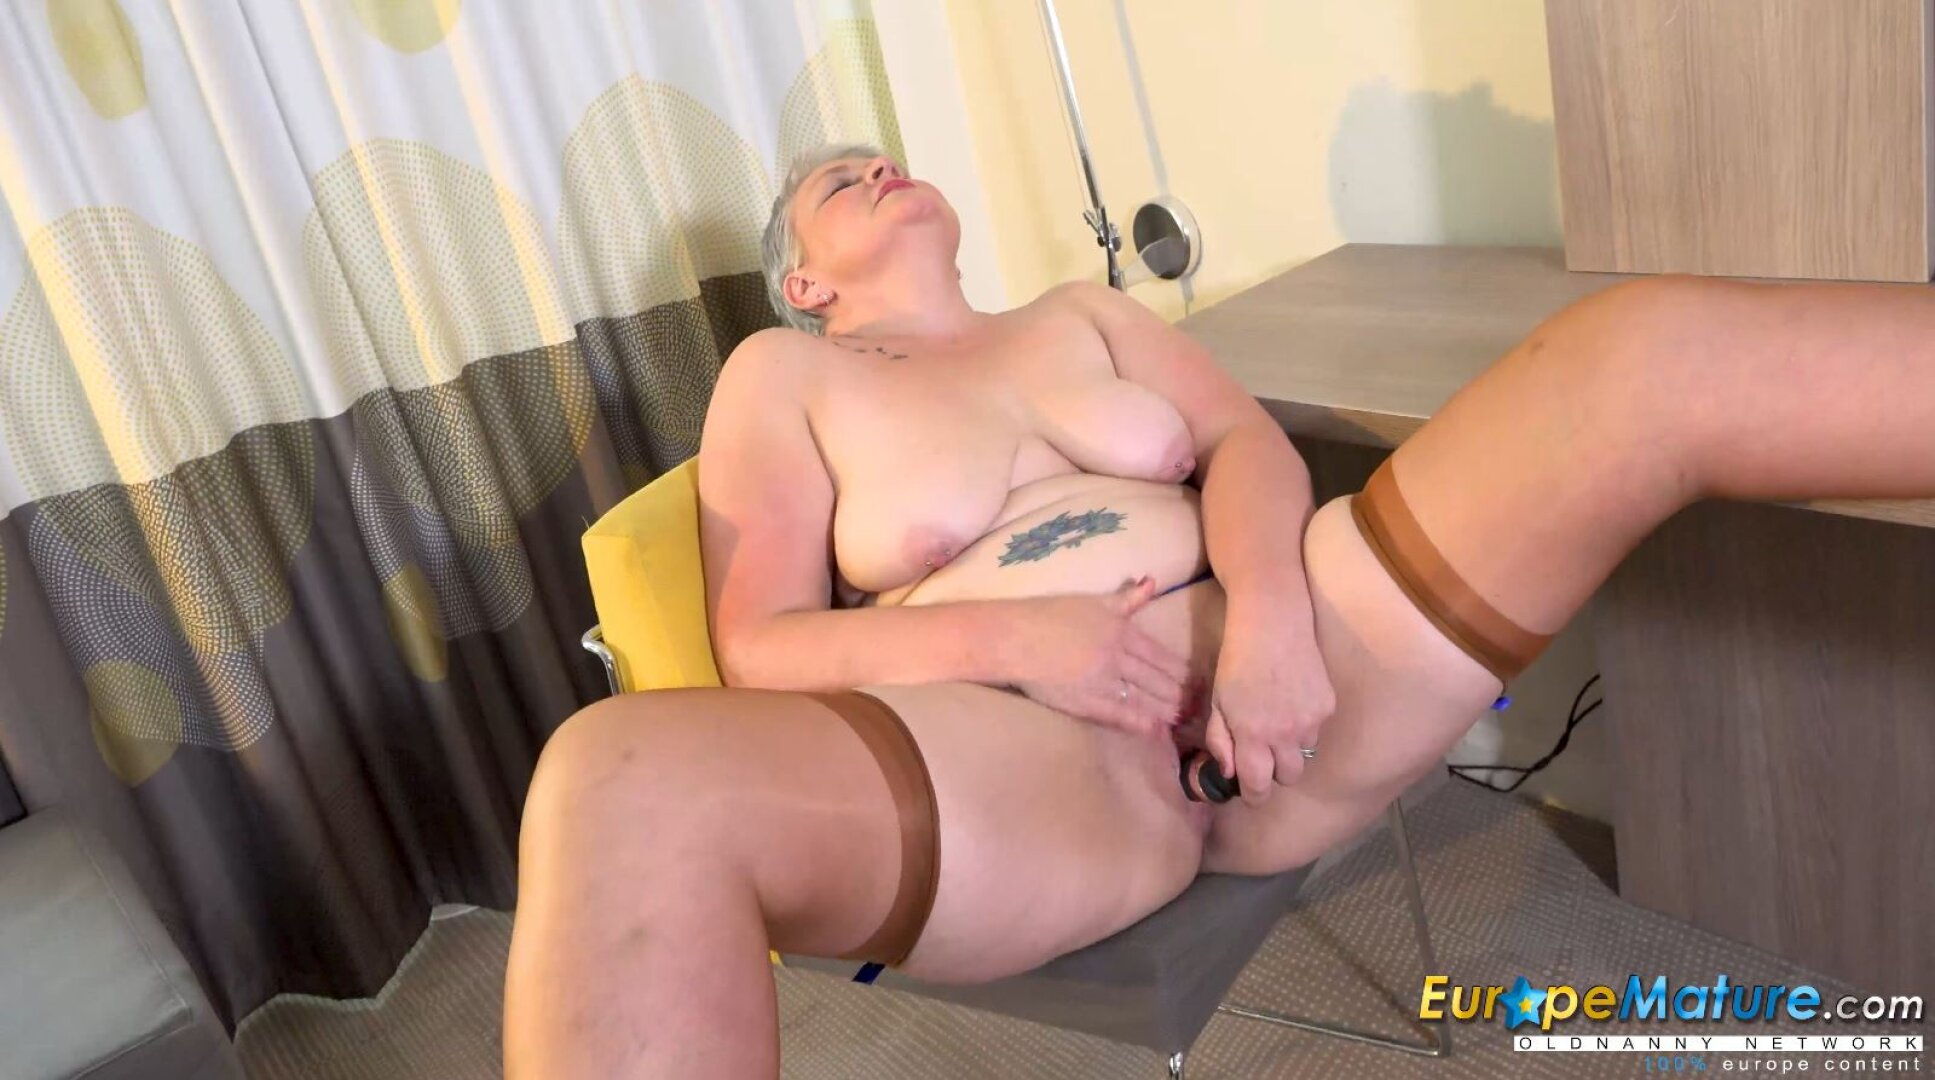 Hottest homemade threesome videos tumblr